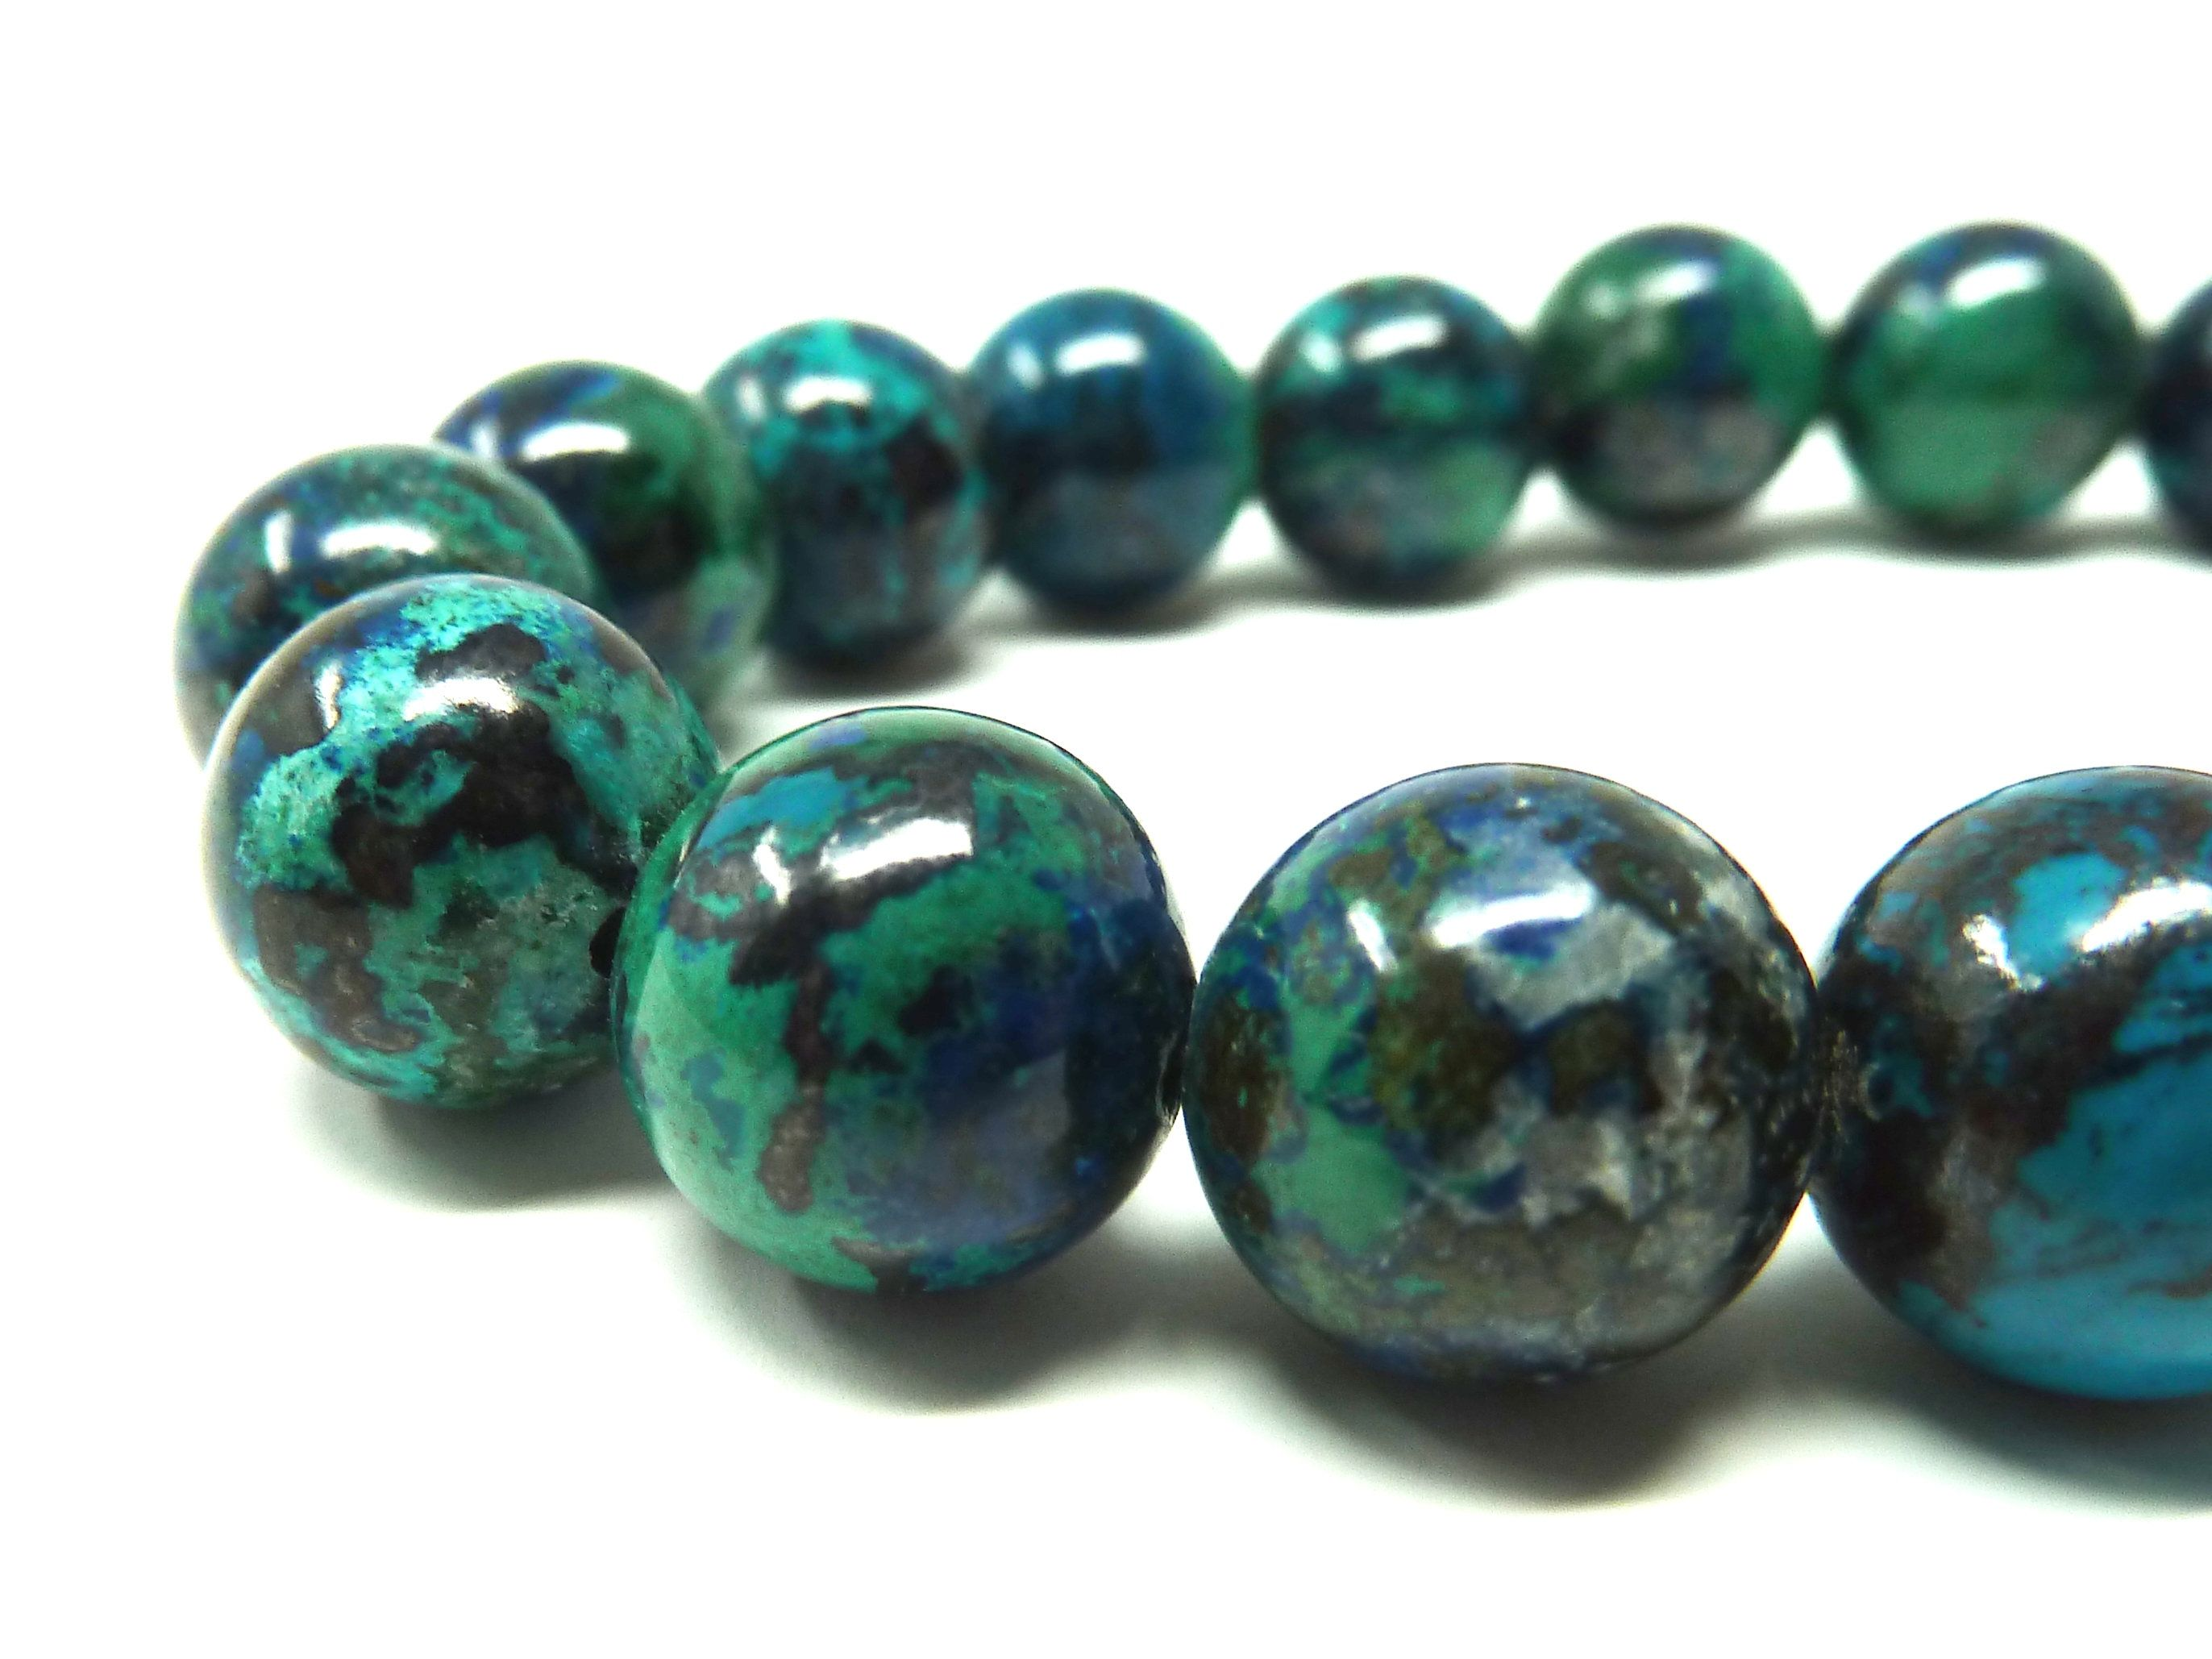 High Quality Bead 10mm Natural Stone and Color Dark Color Smooth Round Black-Green-Blue Bead Bead for Handmade Jewelry Chrysocolla Bead